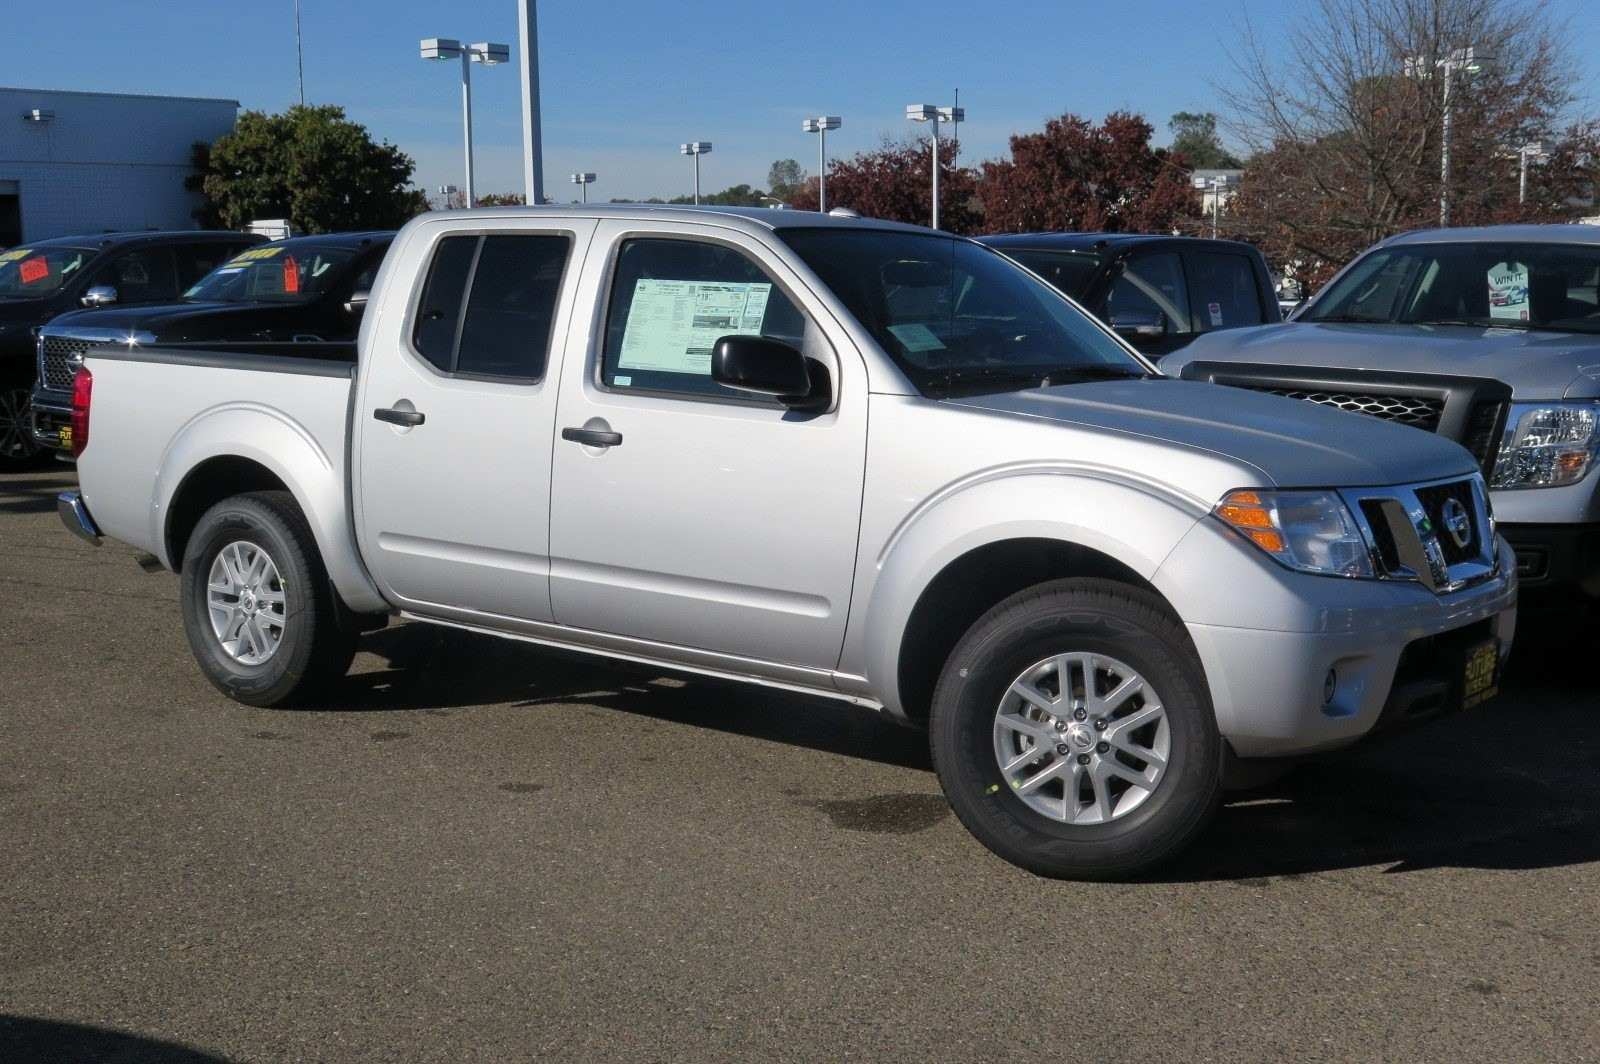 81 Concept of New 2019 Nissan Frontier Pro 4X Release Date Price And Review Interior with New 2019 Nissan Frontier Pro 4X Release Date Price And Review